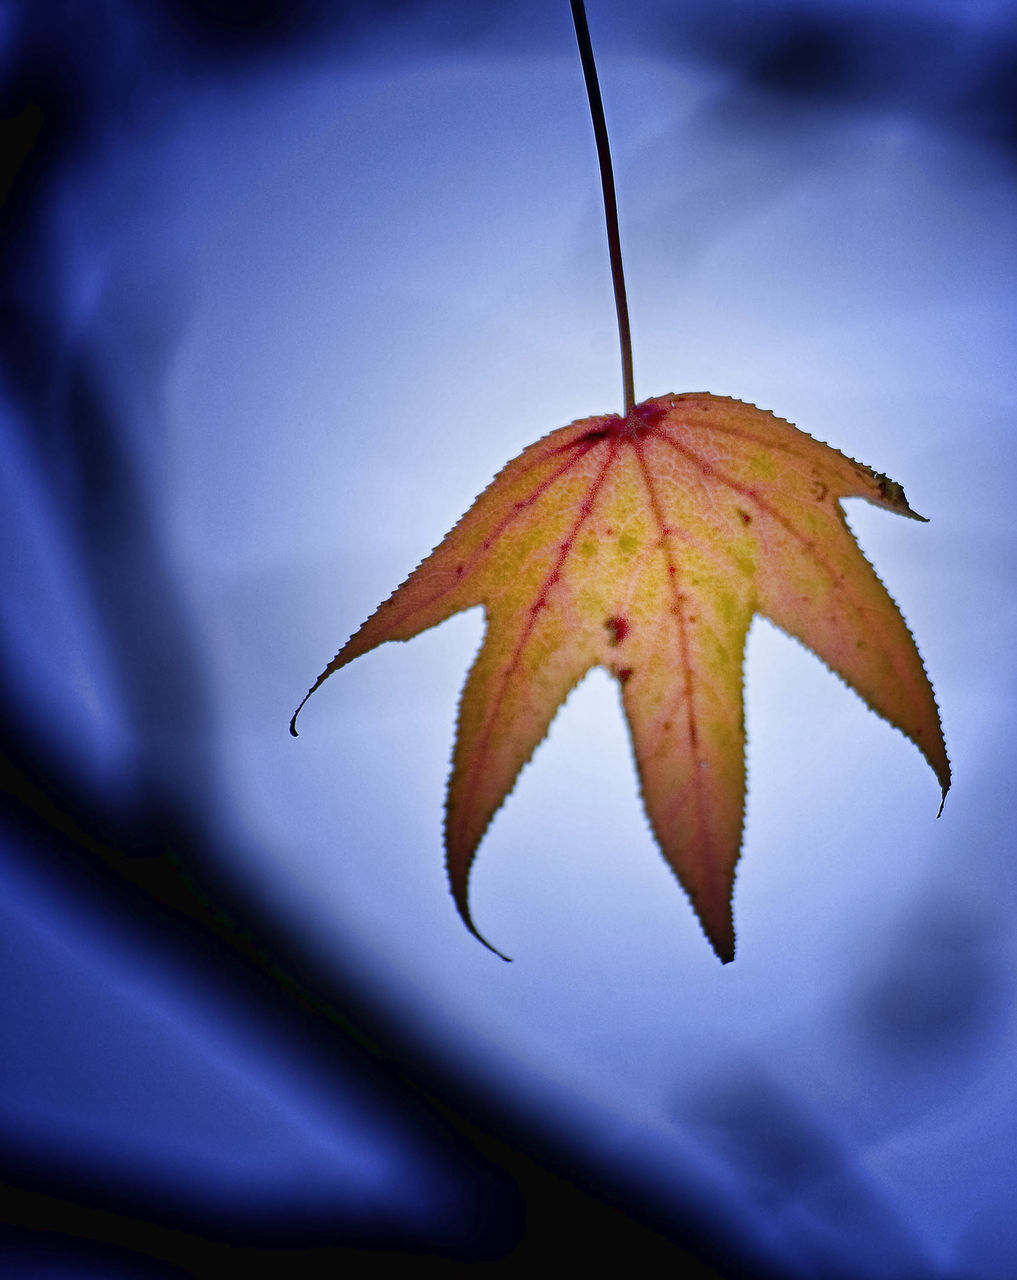 leaf, autumn, change, dry, nature, close-up, day, no people, outdoors, maple leaf, one animal, beauty in nature, maple, fragility